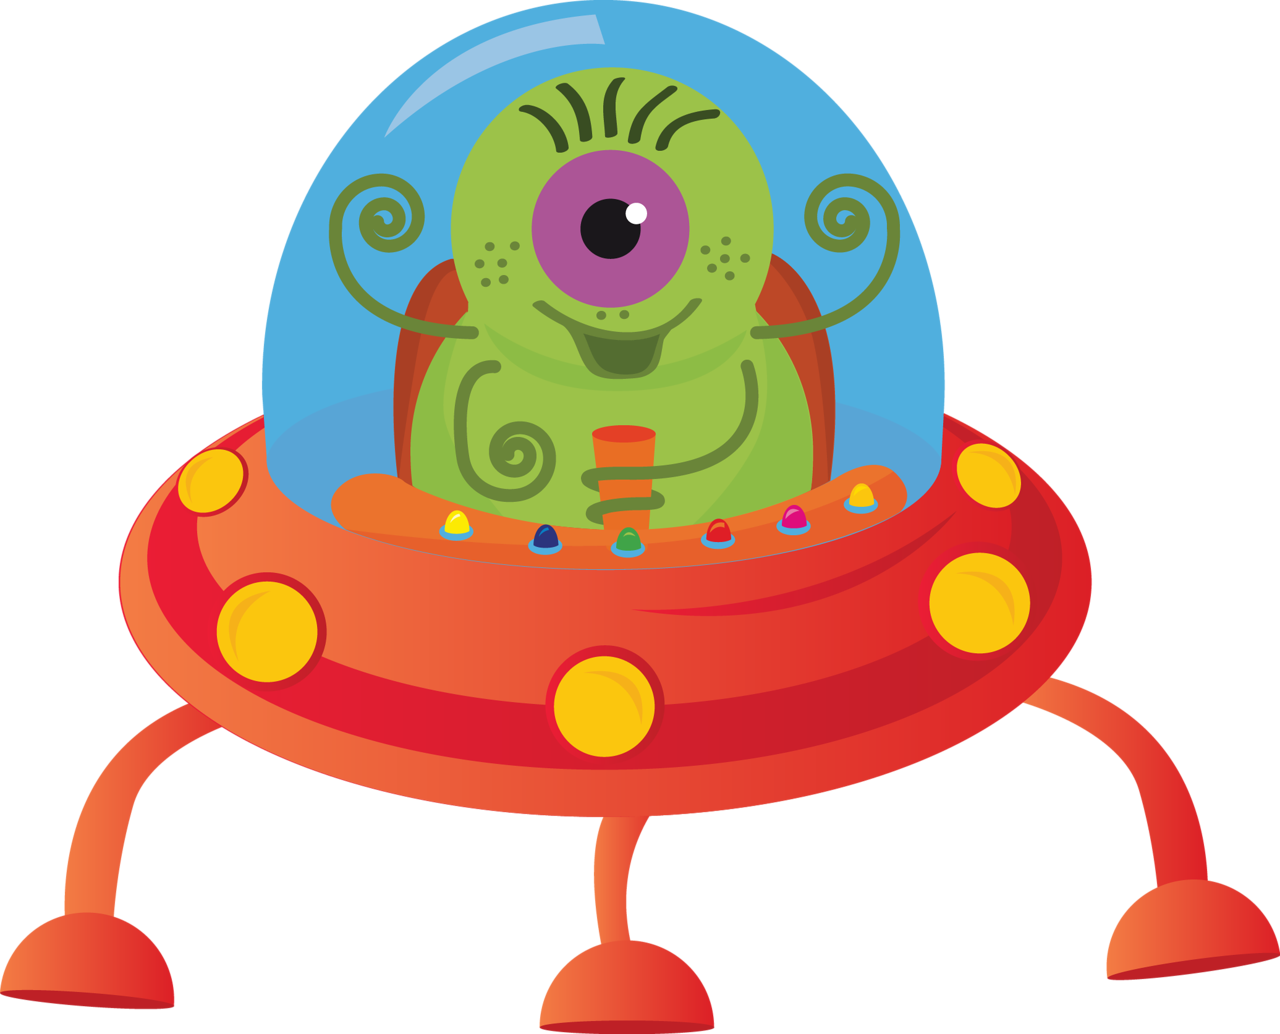 c a be. Galaxy clipart space adventure